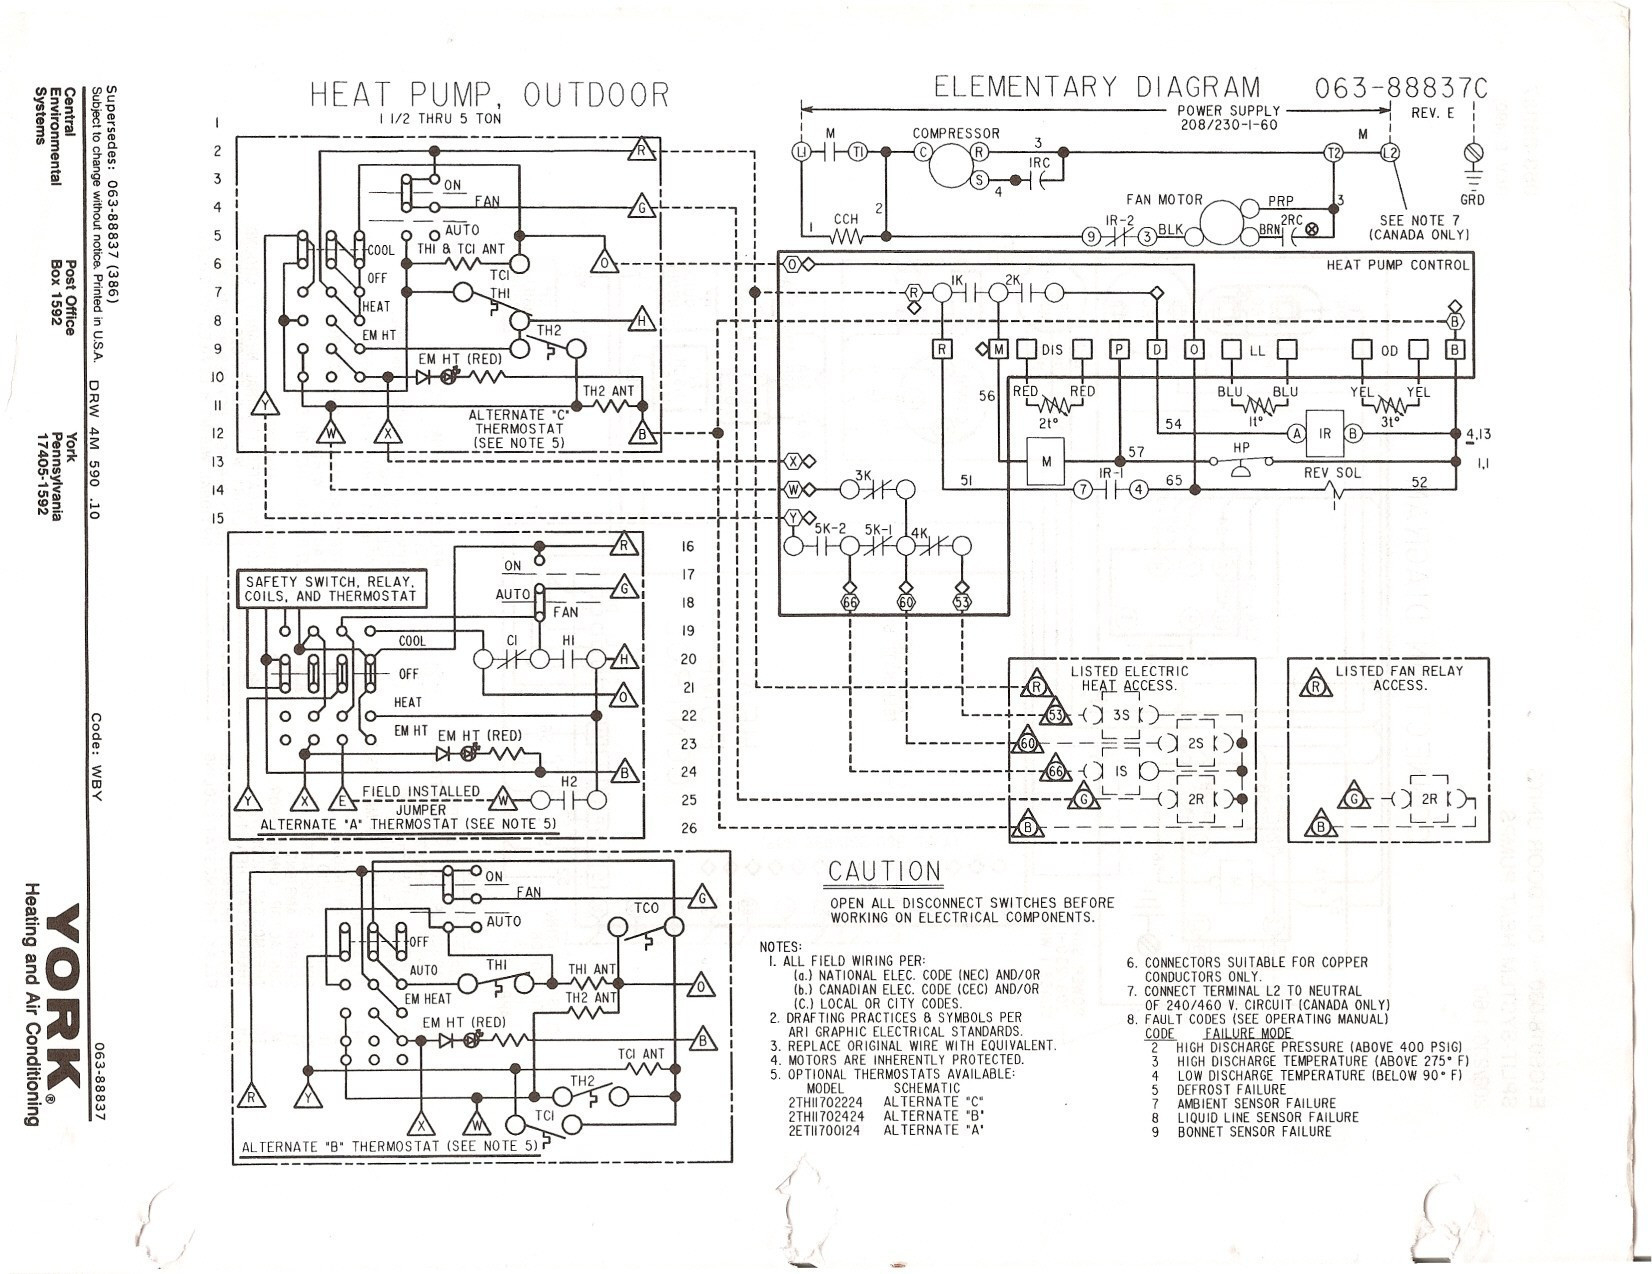 york air handler wiring diagram Download-Wiring Diagram for York Air Conditioner Best Mcquay Air Conditioner Wiring Diagram Valid Mcquay Wiring Diagram 15-m